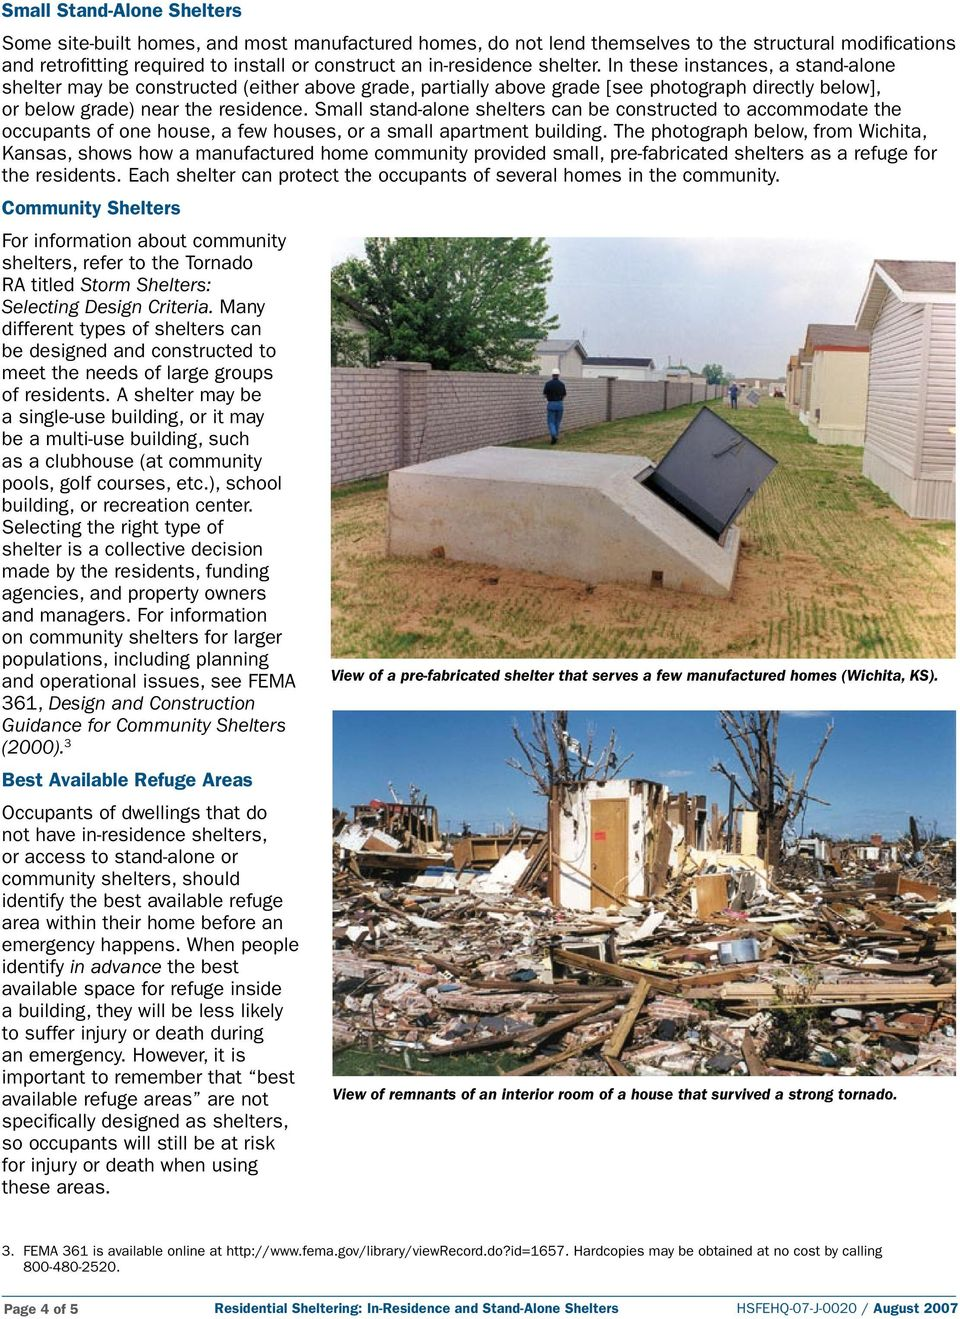 Small stand-alone shelters can be constructed to accommodate the occupants of one house, a few houses, or a small apartment building.